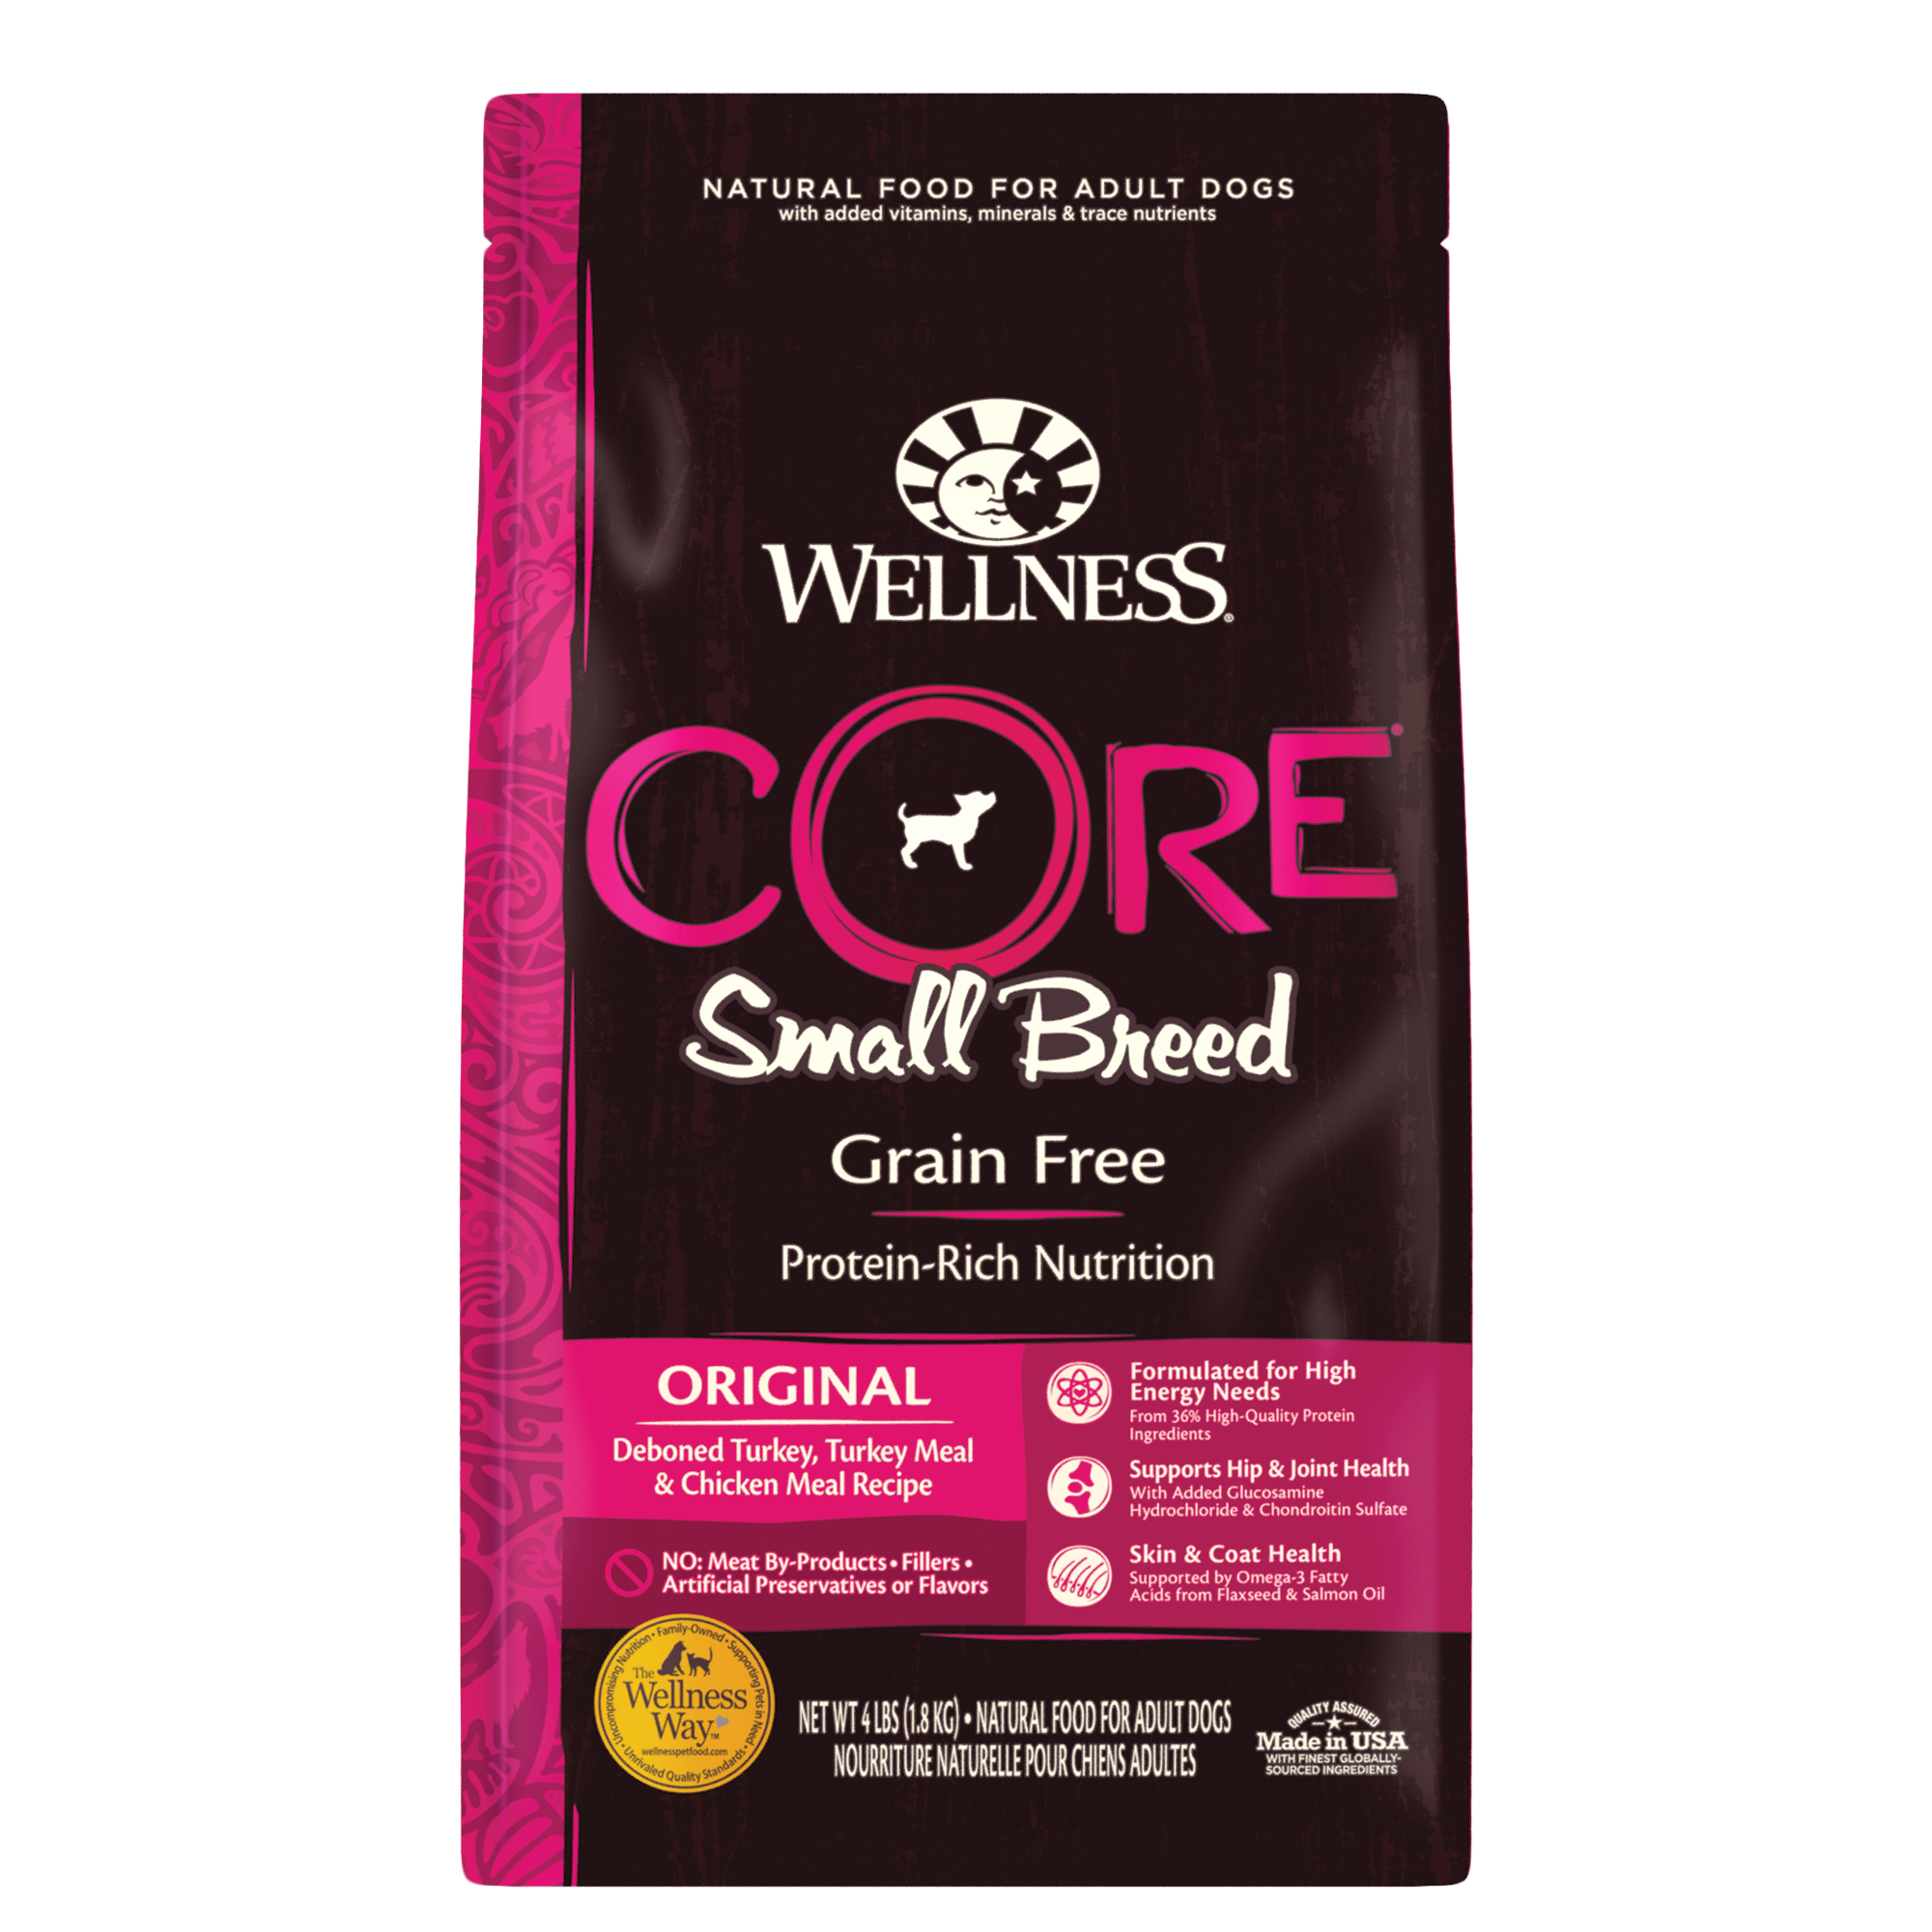 Wellness CORE Small Breed Original Dry Dog Food